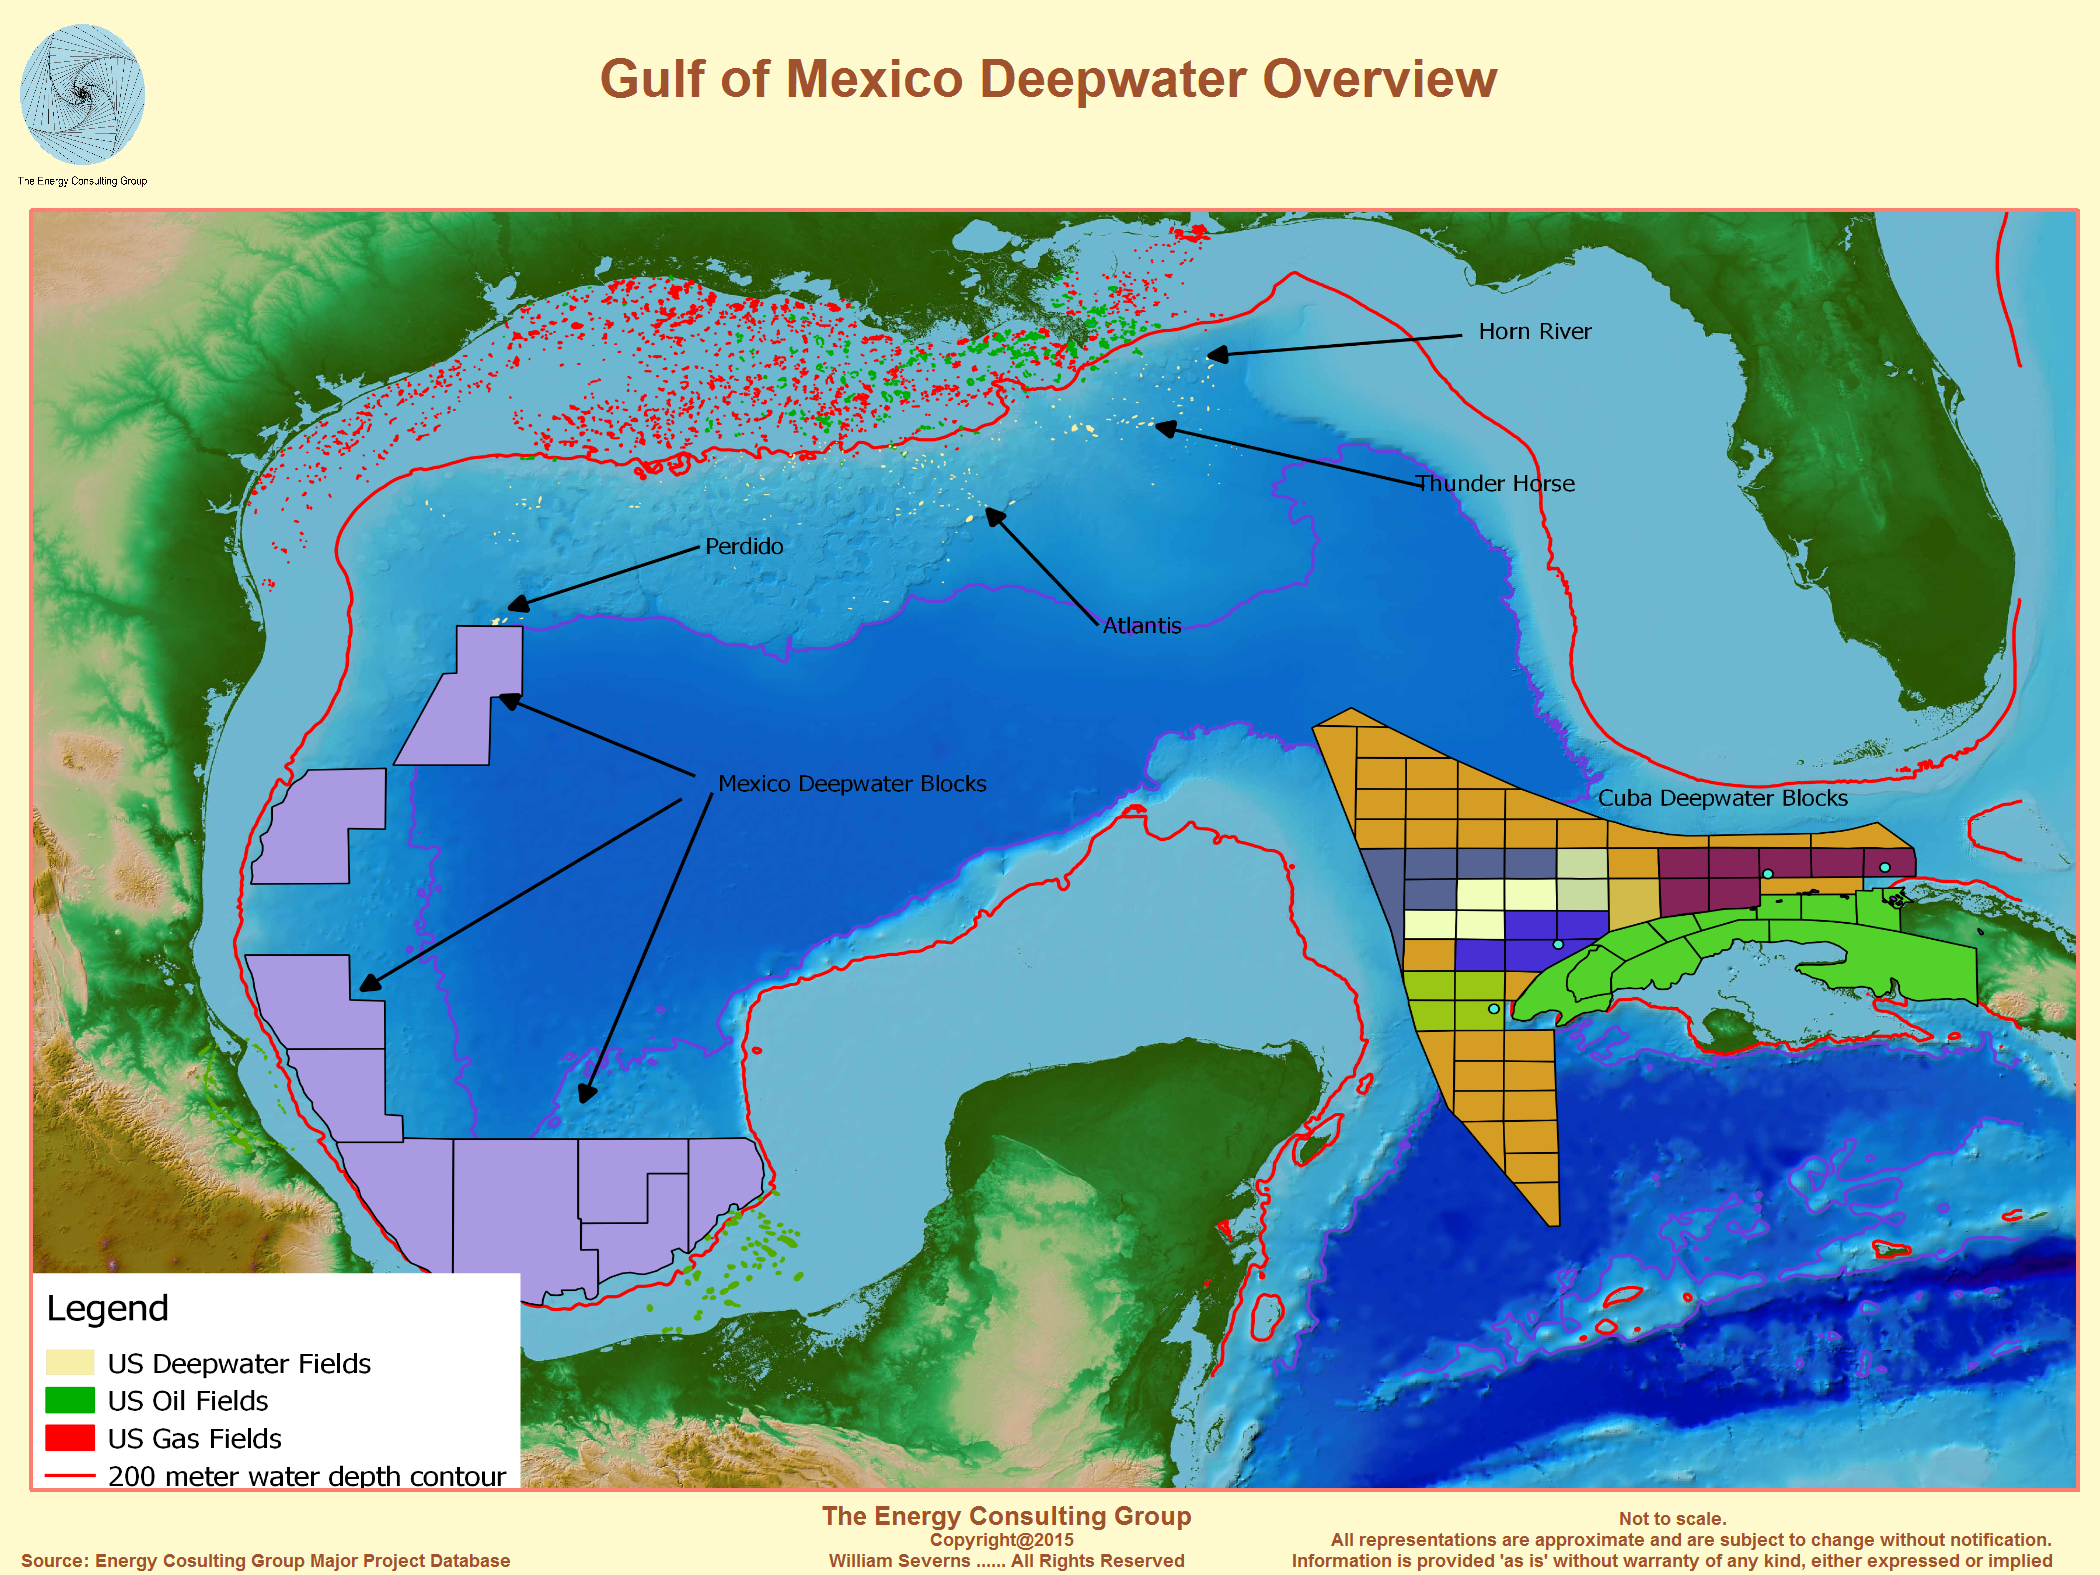 The Upstream Oil and Gas Industry In The Gulf of Mexico